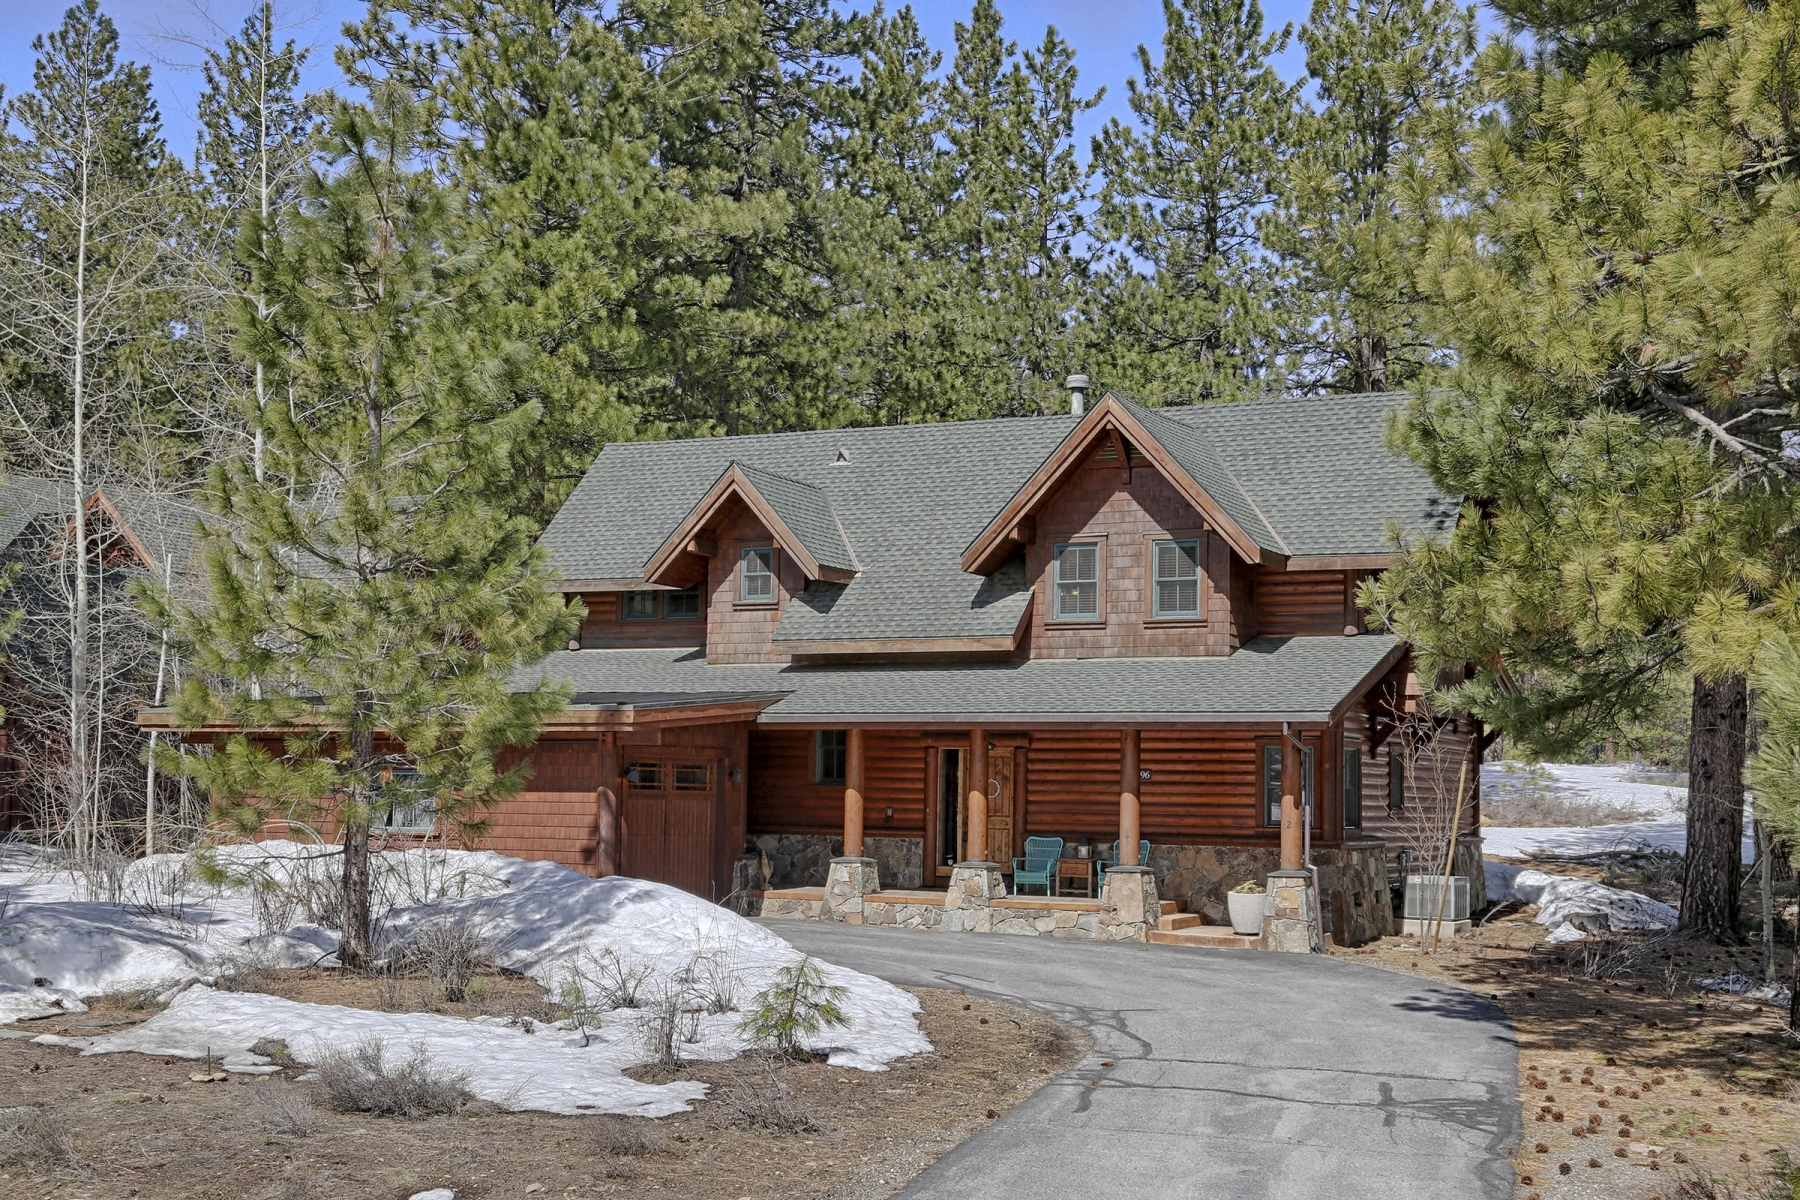 Single Family Home for Active at 12296 Fairway Drive, Truckee, California 96161 Truckee, California 96161 United States